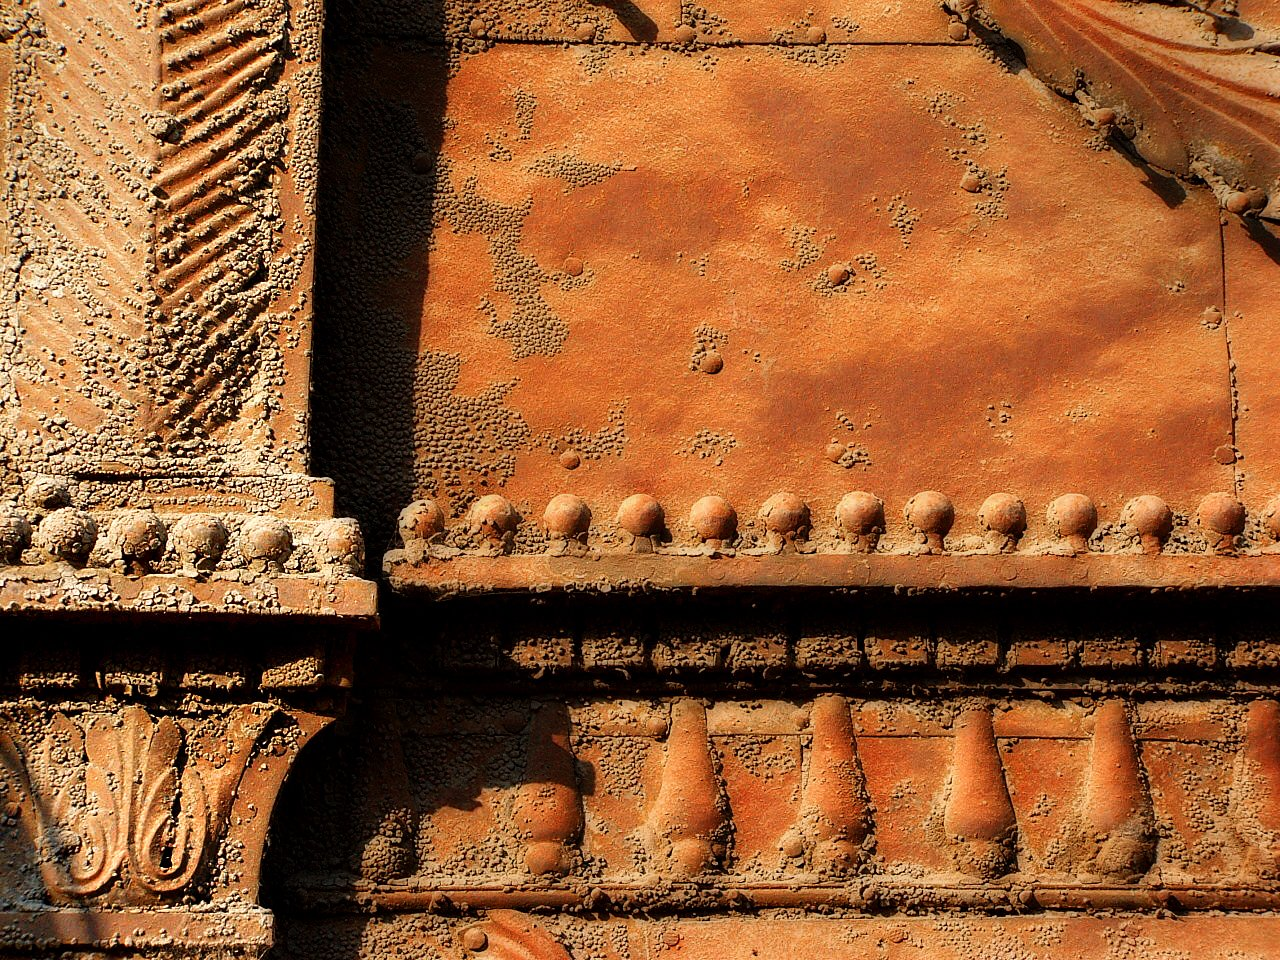 rust covered artistic relief